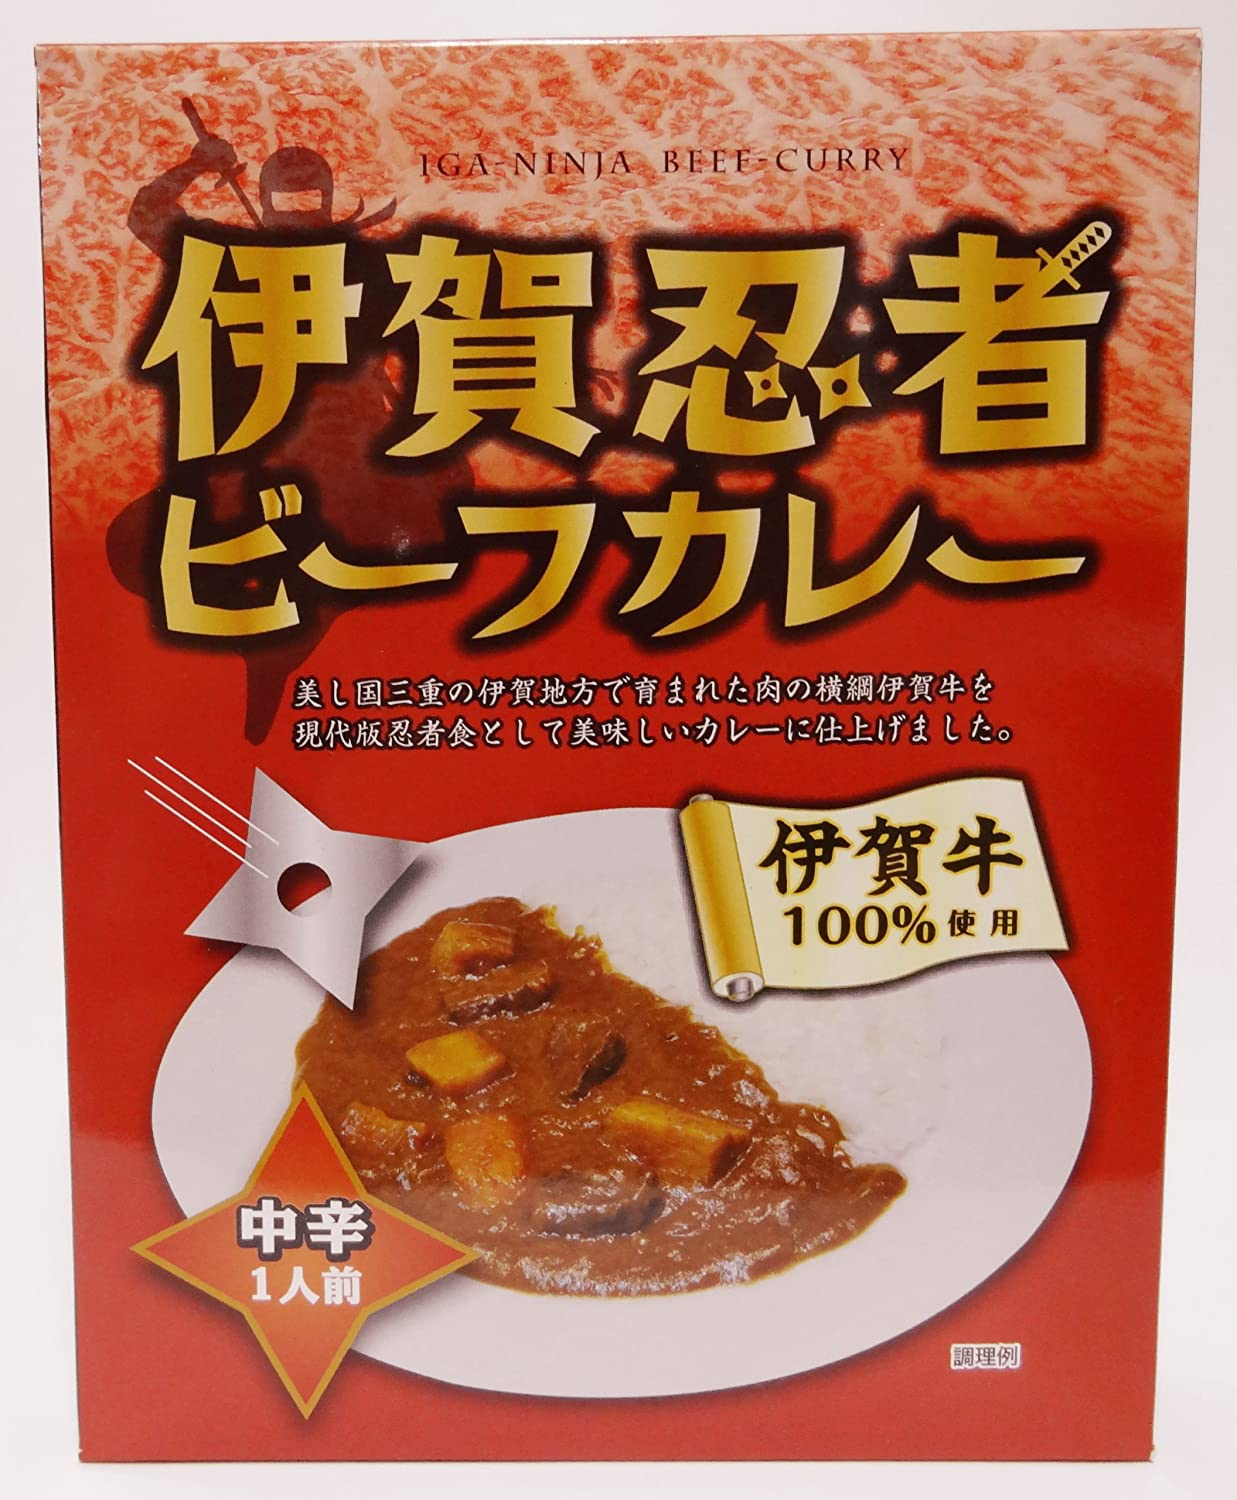 Amazon.com : Iga ninja beef curry : Grocery & Gourmet Food